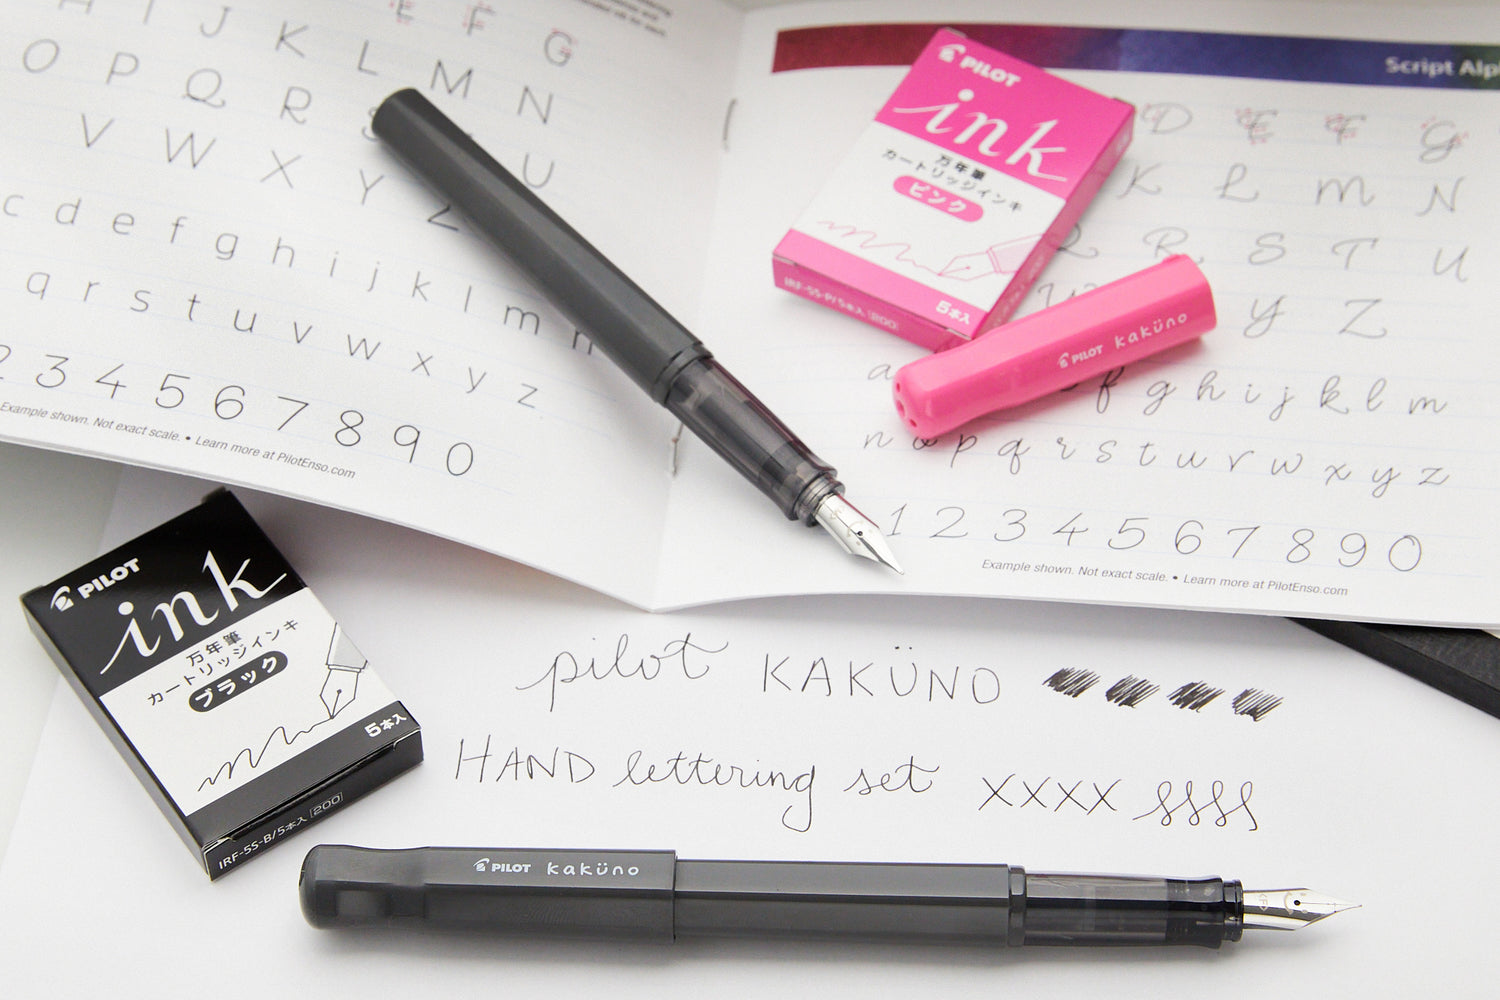 Pilot Kakuno Hand Lettering Fountain Pen Set - Cherry Blossom